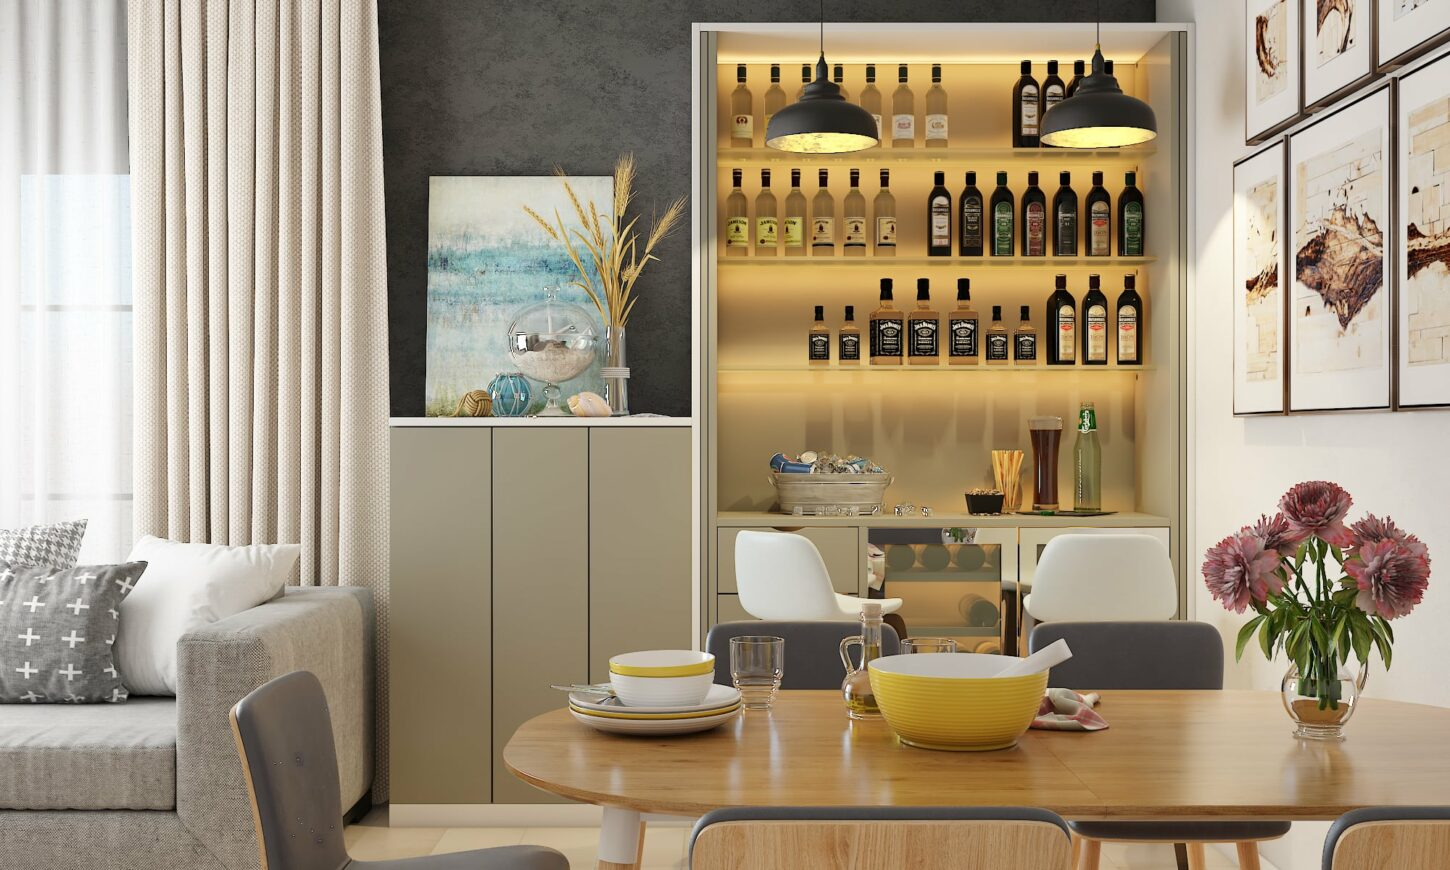 Modern minimal style dining room design with wooden dining tables 6 seater, cabinets, wine rack, chairs.